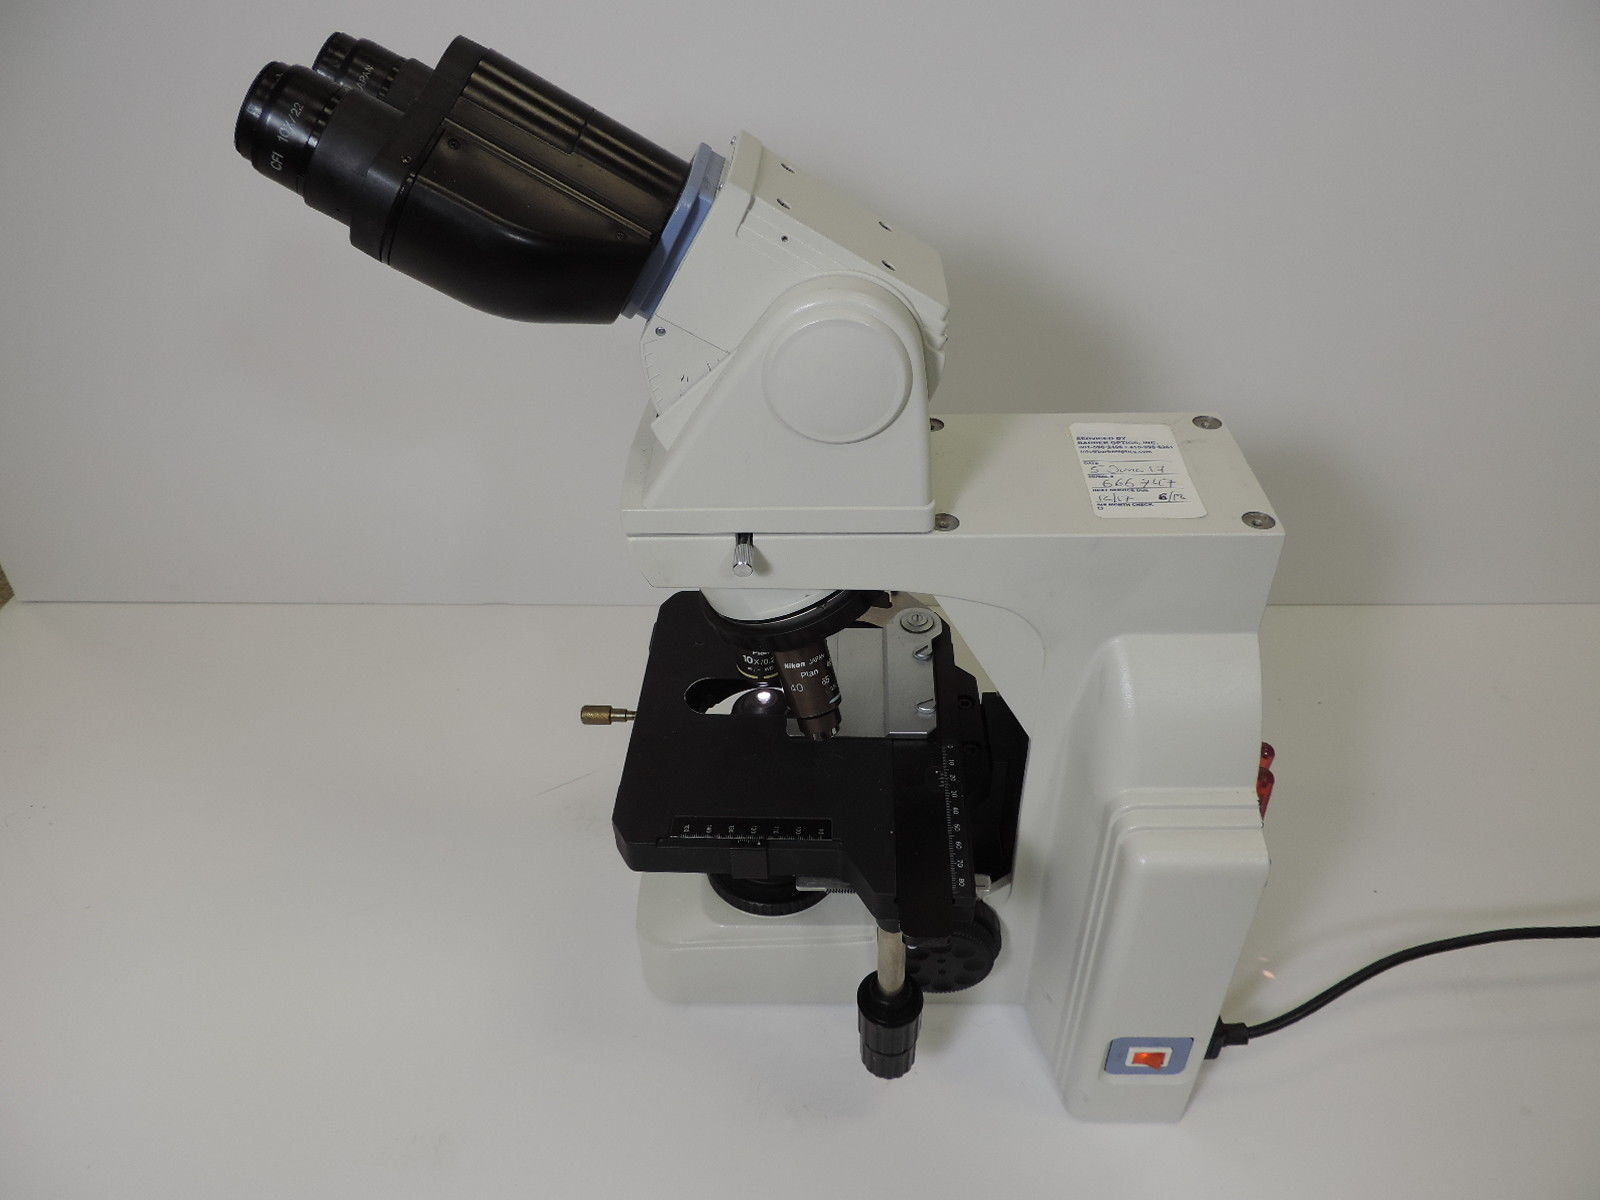 Nikon Eclipse E400 Laboratory Microscope